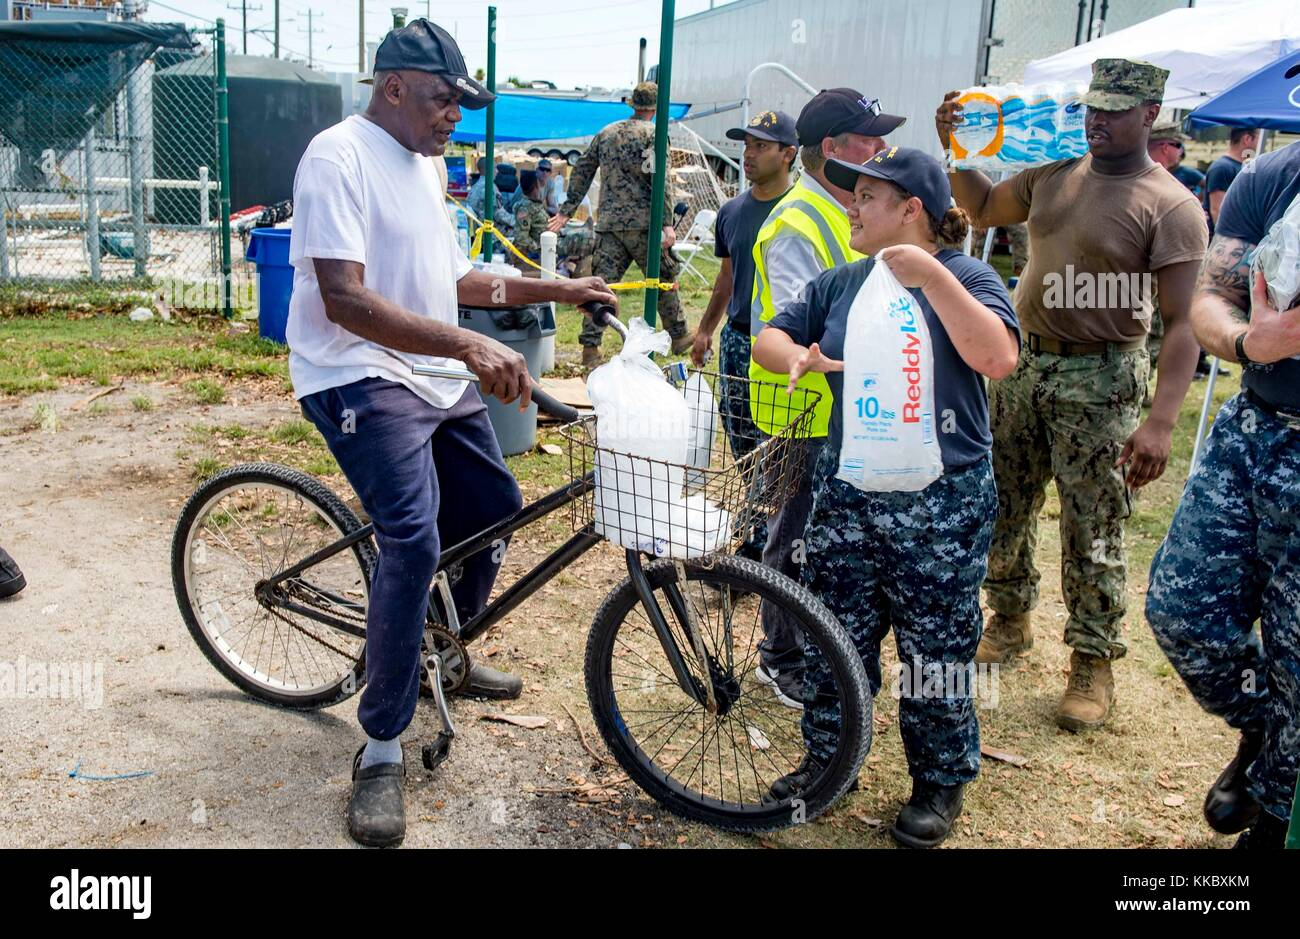 U.S. Navy sailors deliver emergency supplies to local residents during relief efforts in the aftermath of Hurricane - Stock Image